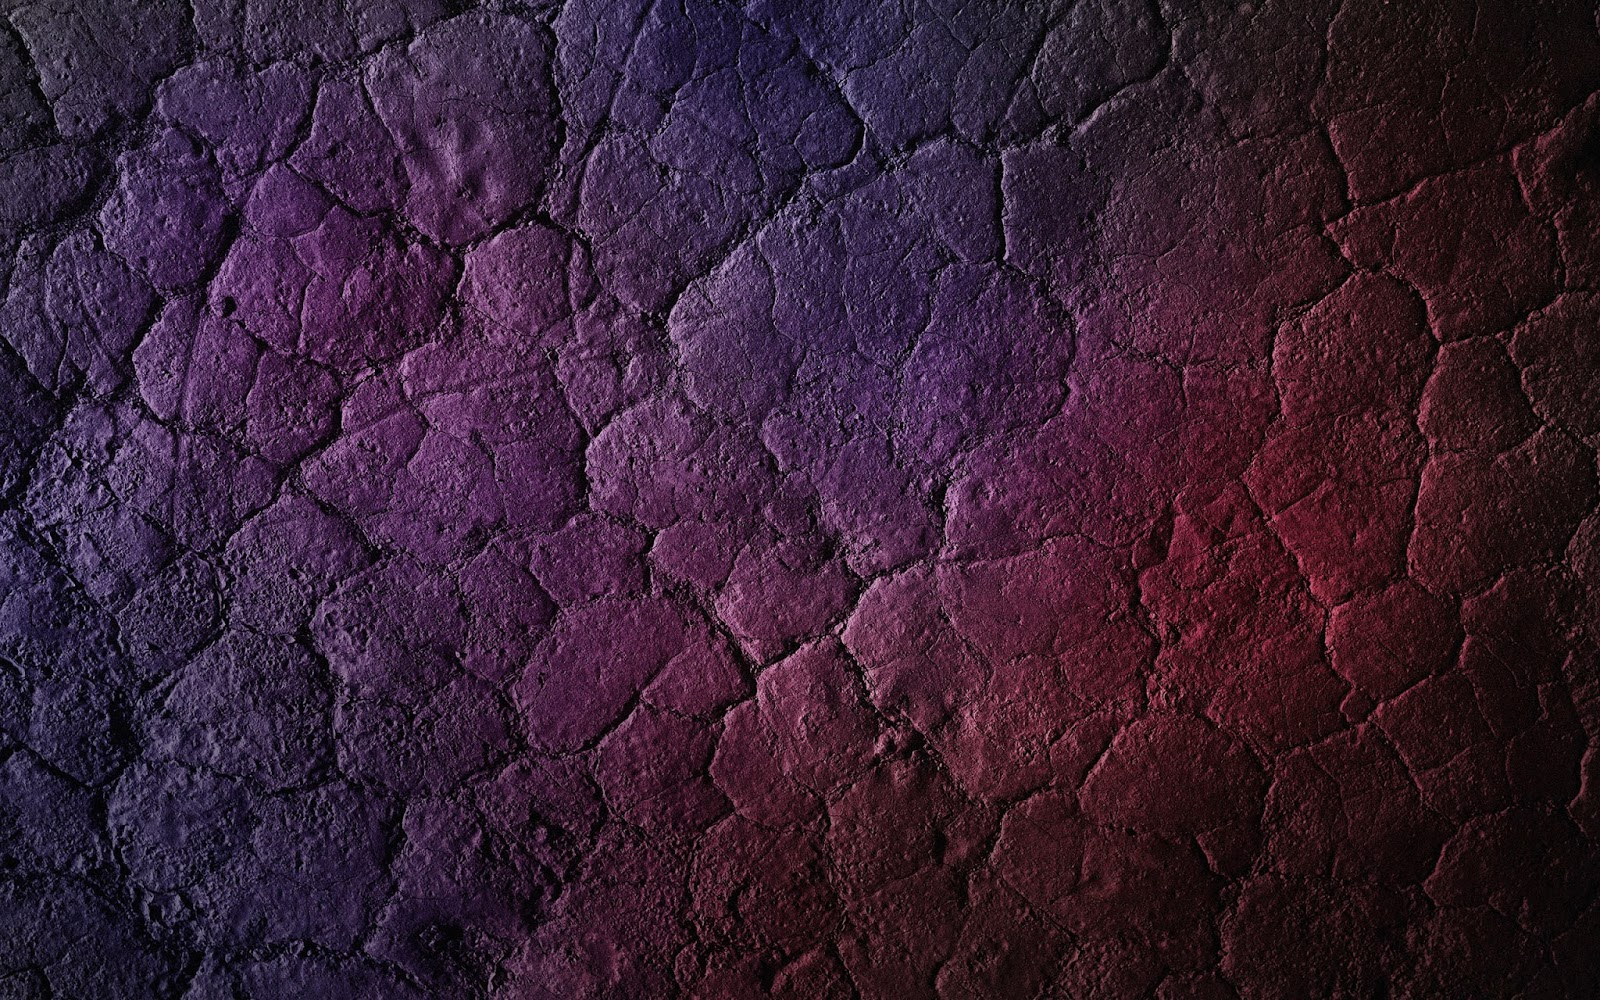 background cracked dark texture - photo #28